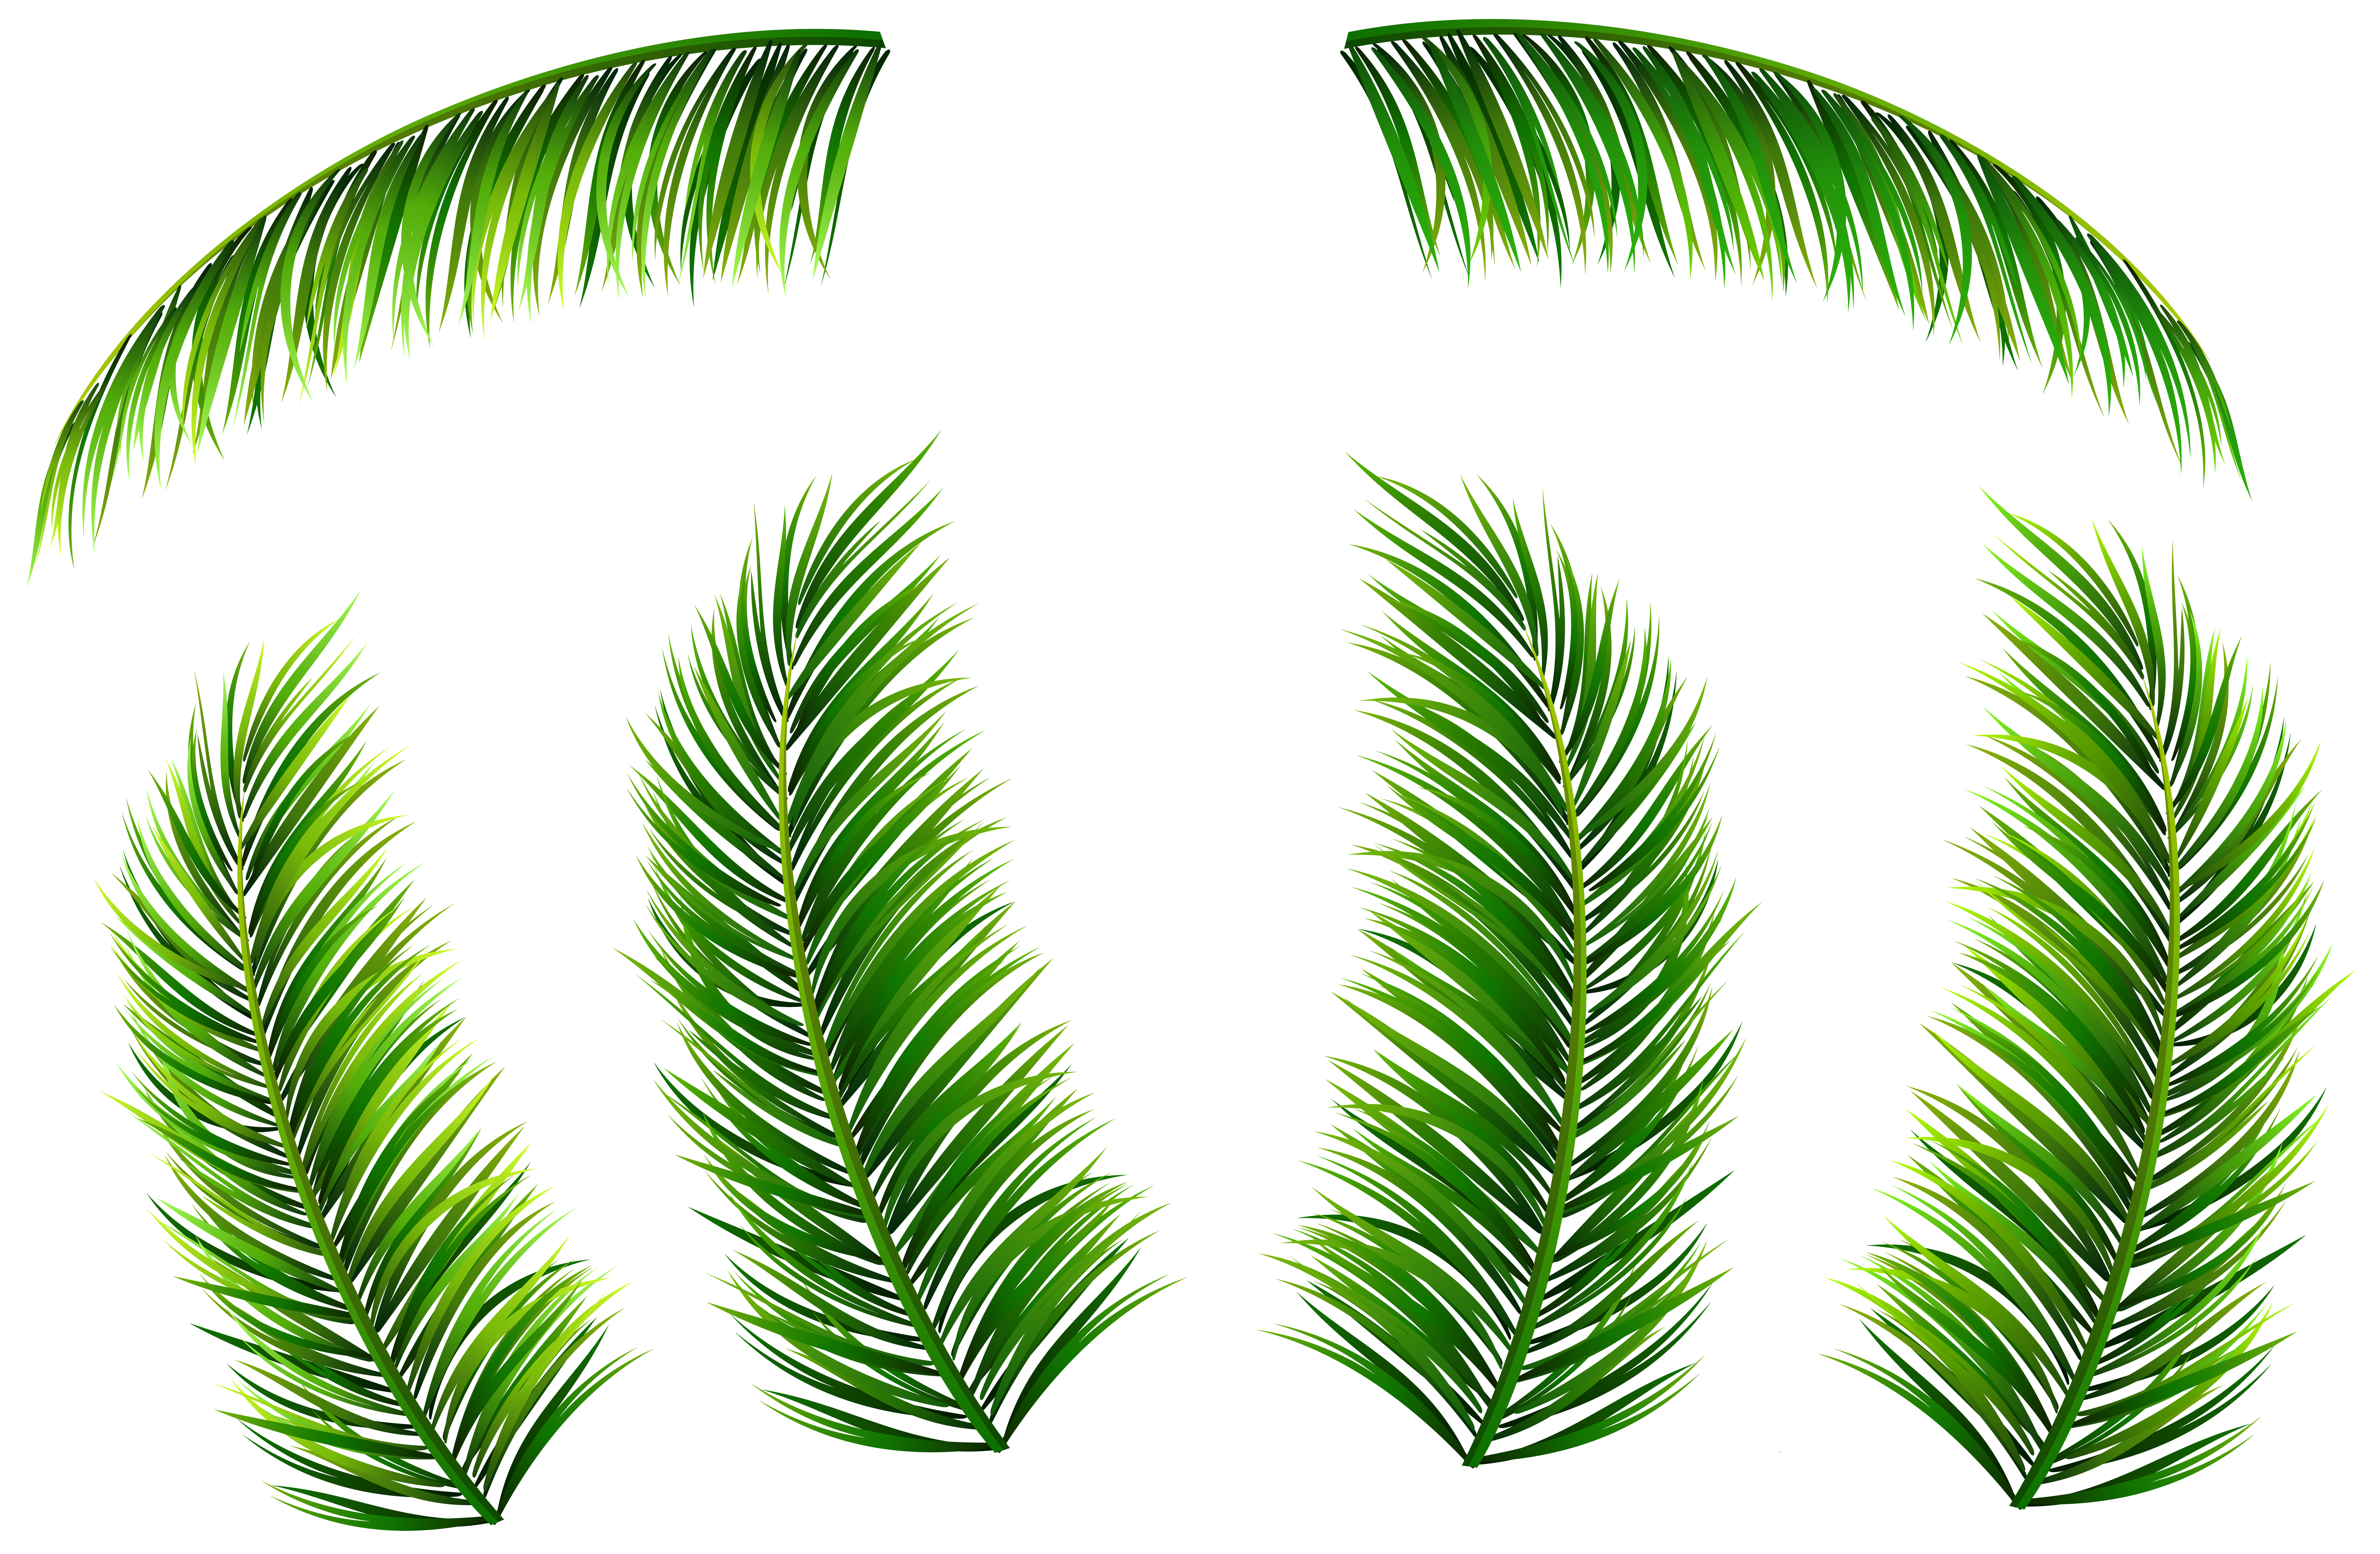 Palm frond palm leaf clipart #16